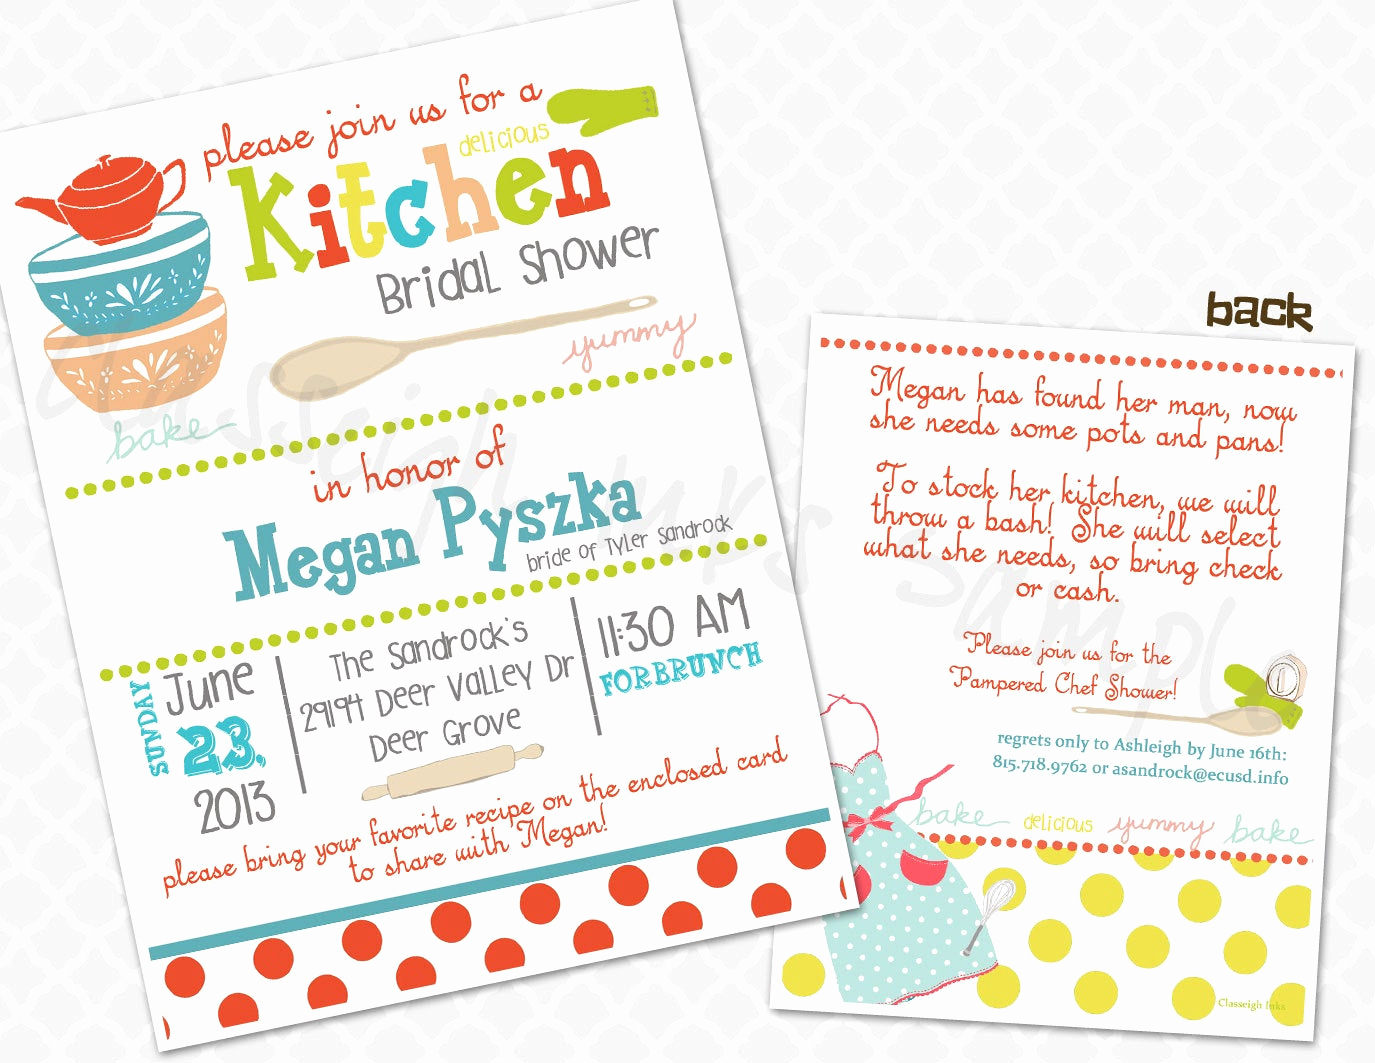 Pampered Chef Party Invitation Beautiful Pampered Chef Kitchen Recipe Bridal Shower Invitation Bridal